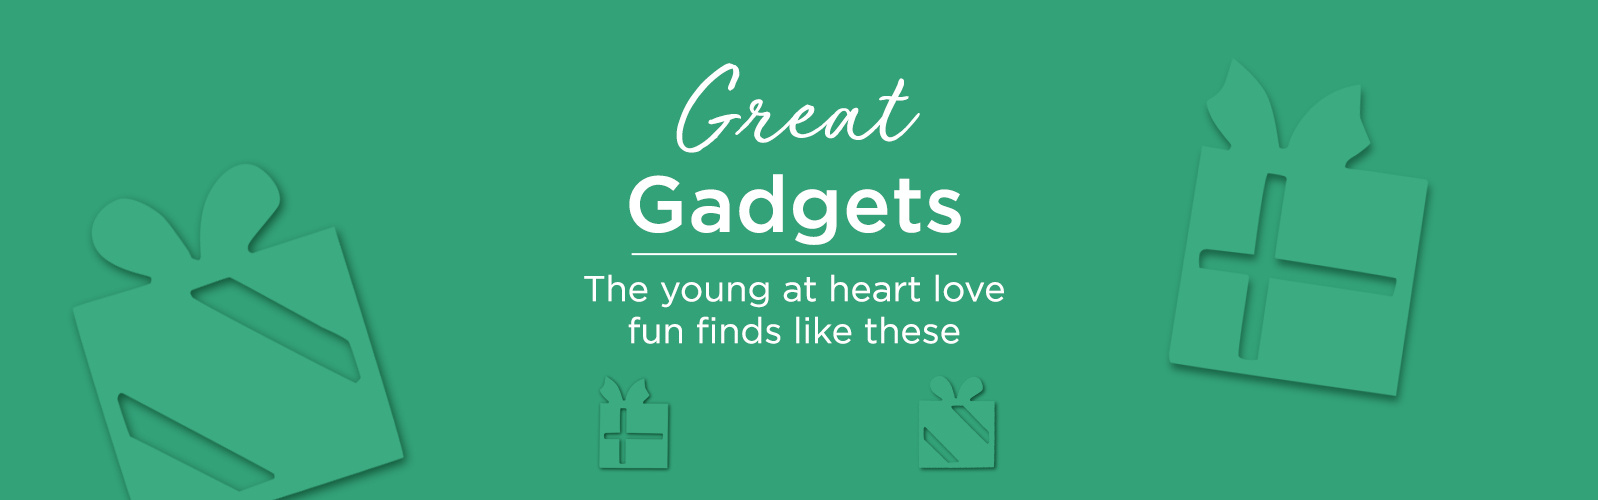 Great Gadgets - The young at heart love fun tech finds like these